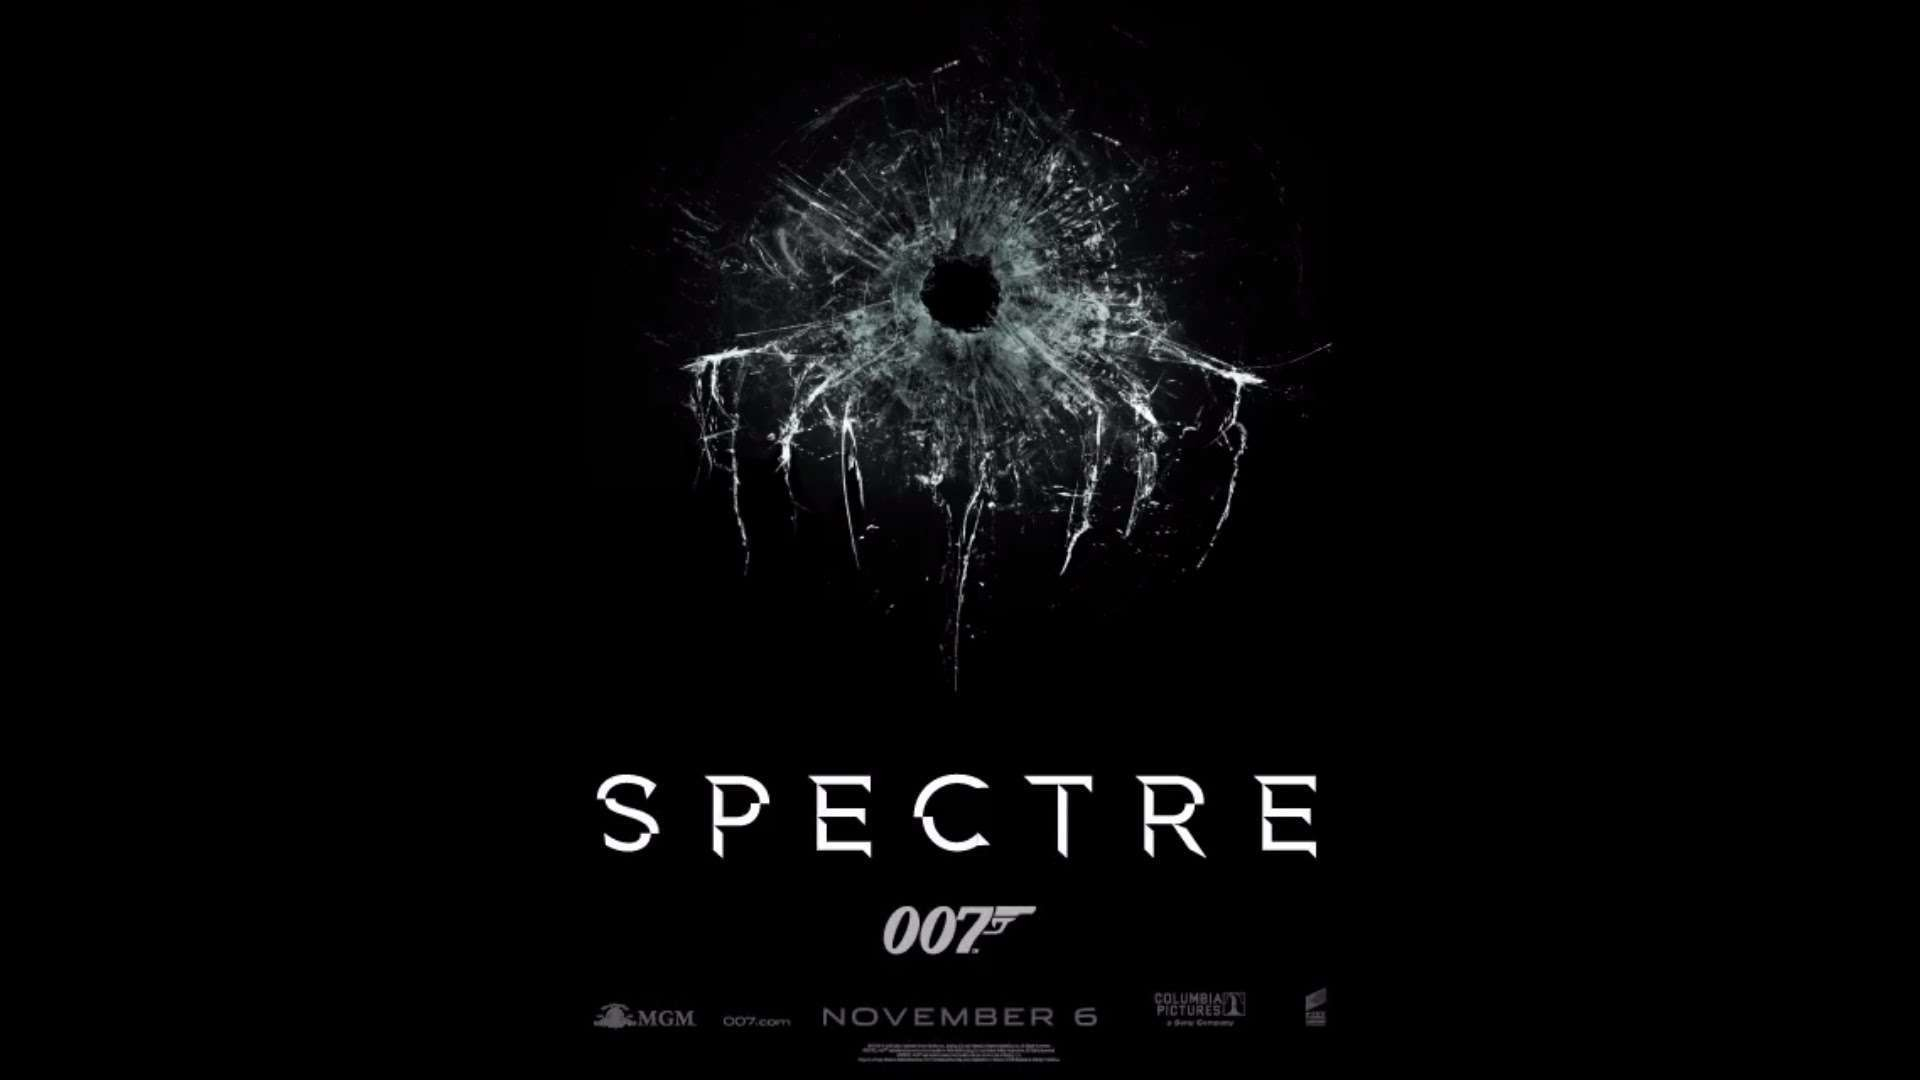 Spectre HD Wallpapers. Related news: Call of Duty Black Ops 3 Spectre  Wallpapers